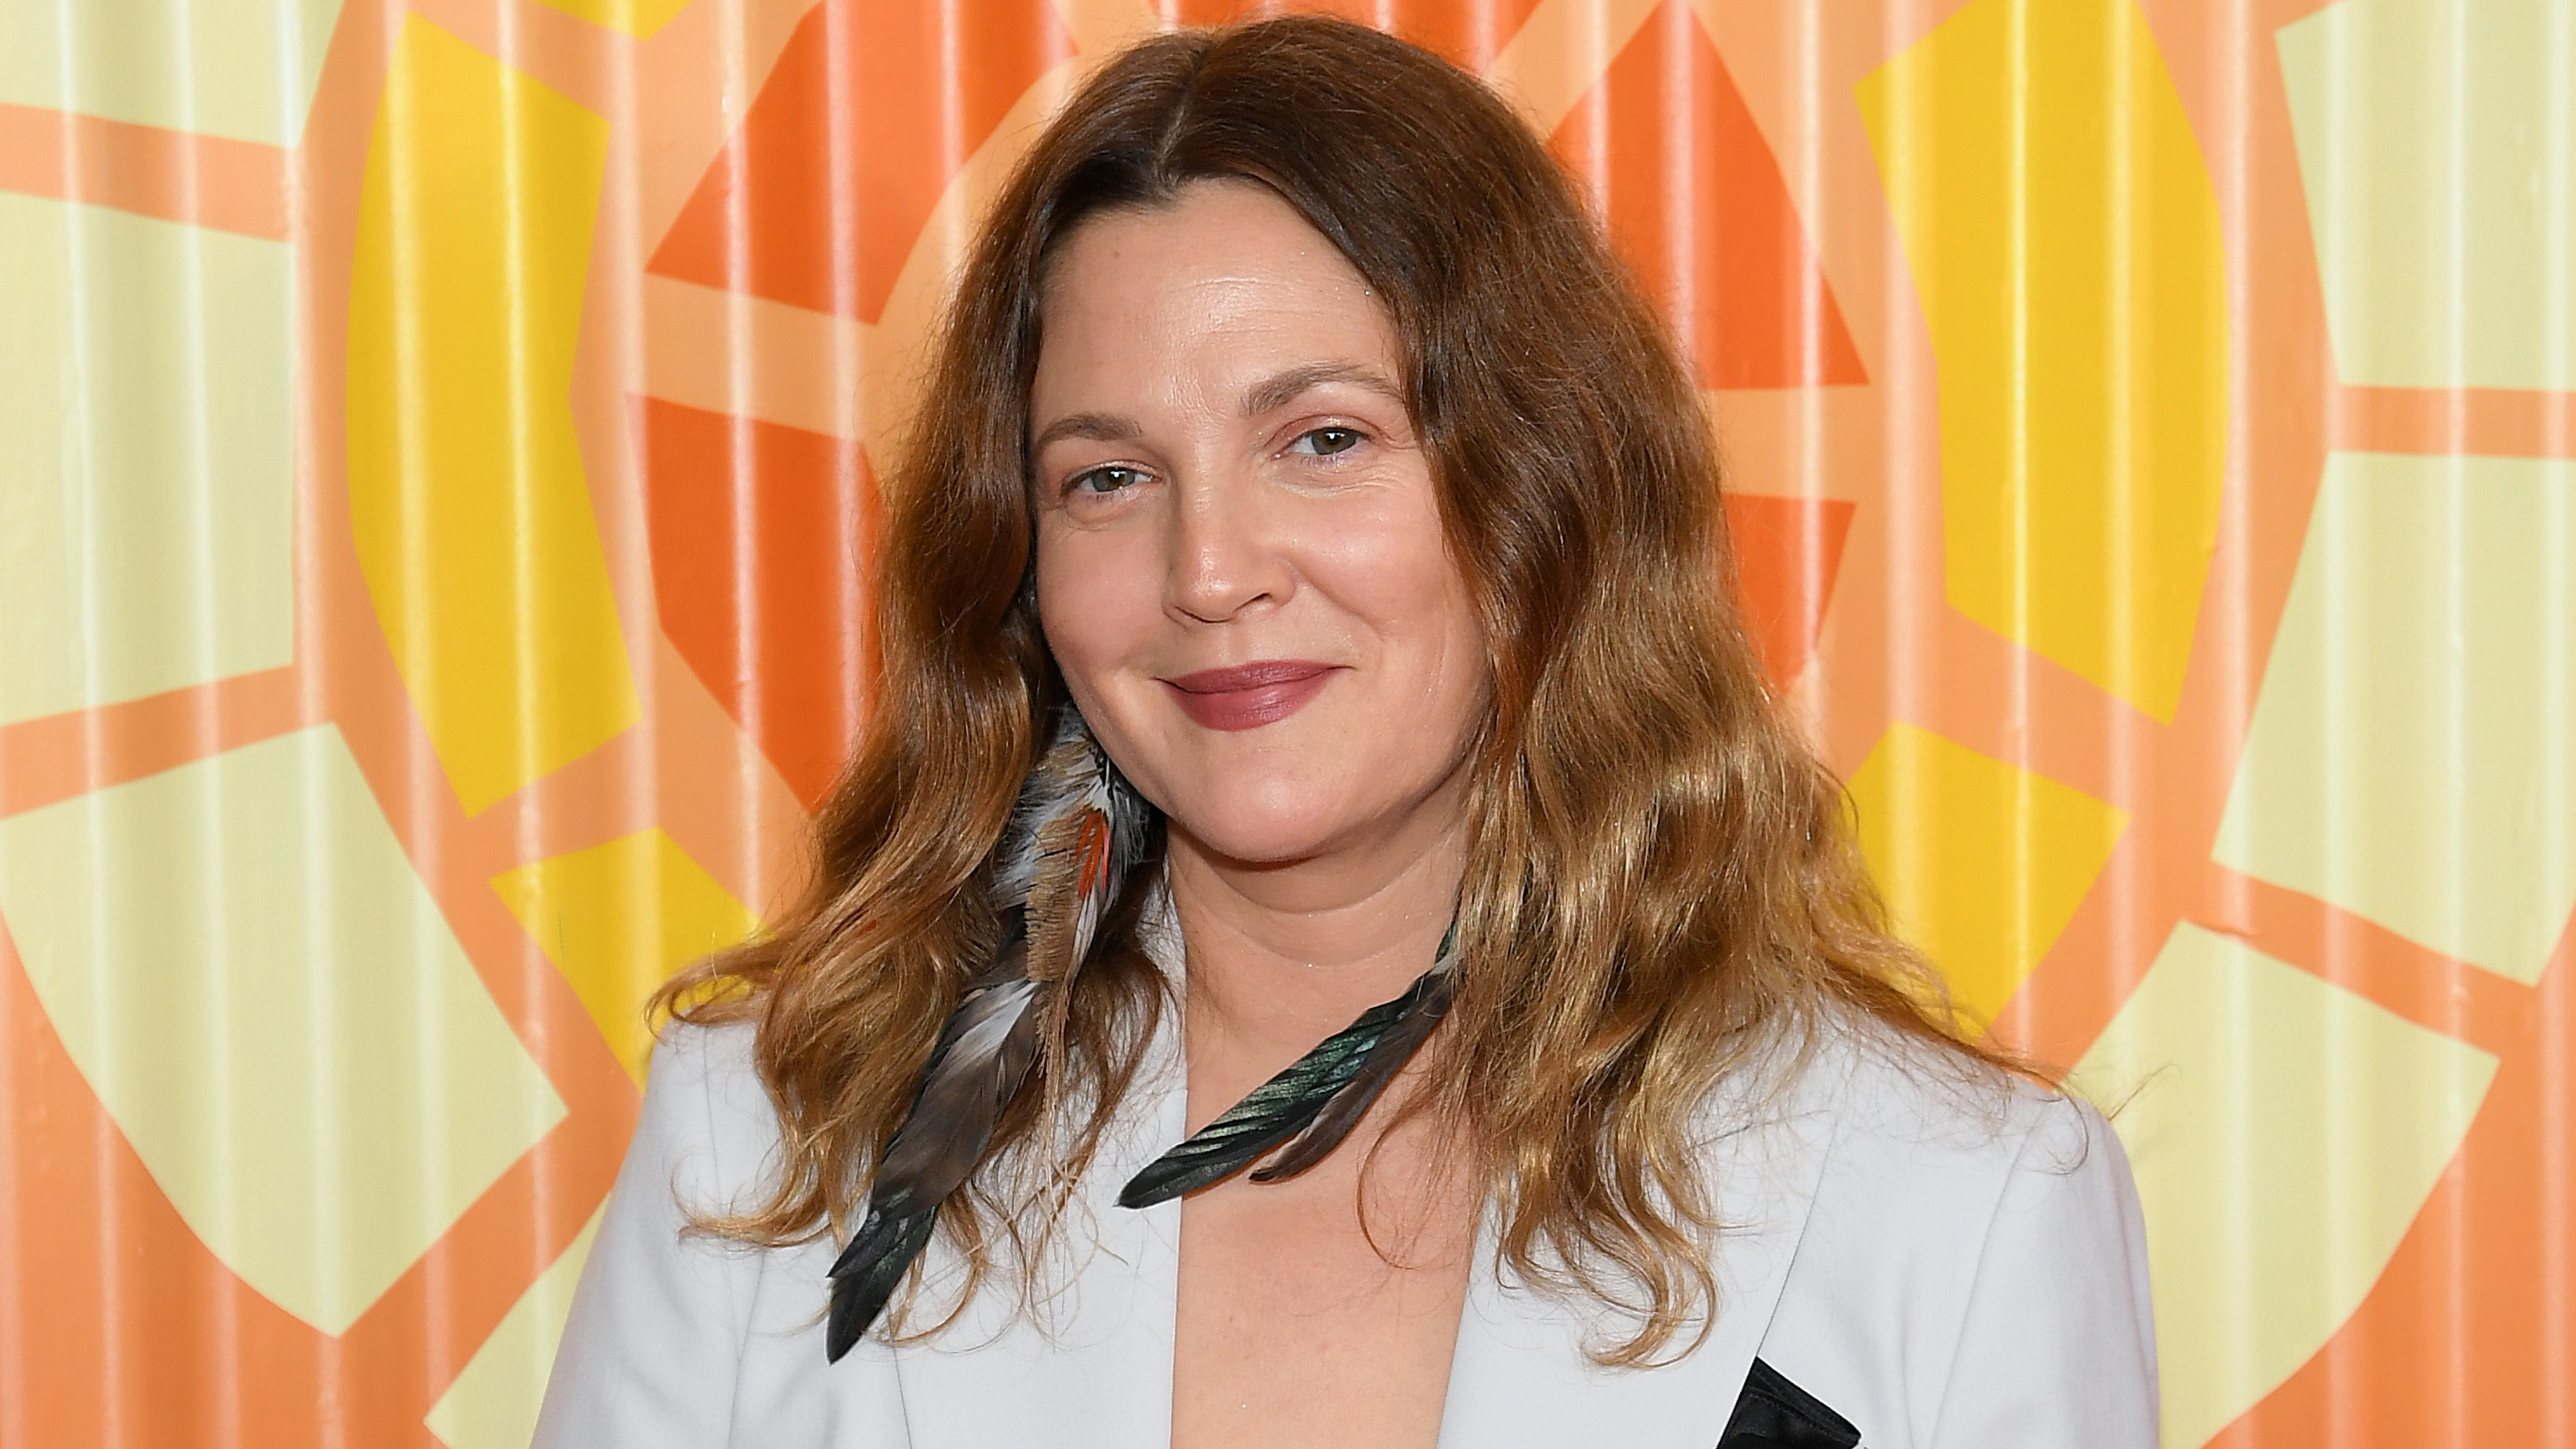 Drew Barrymore says 'Bridgerton' inspired her to continue using dating apps